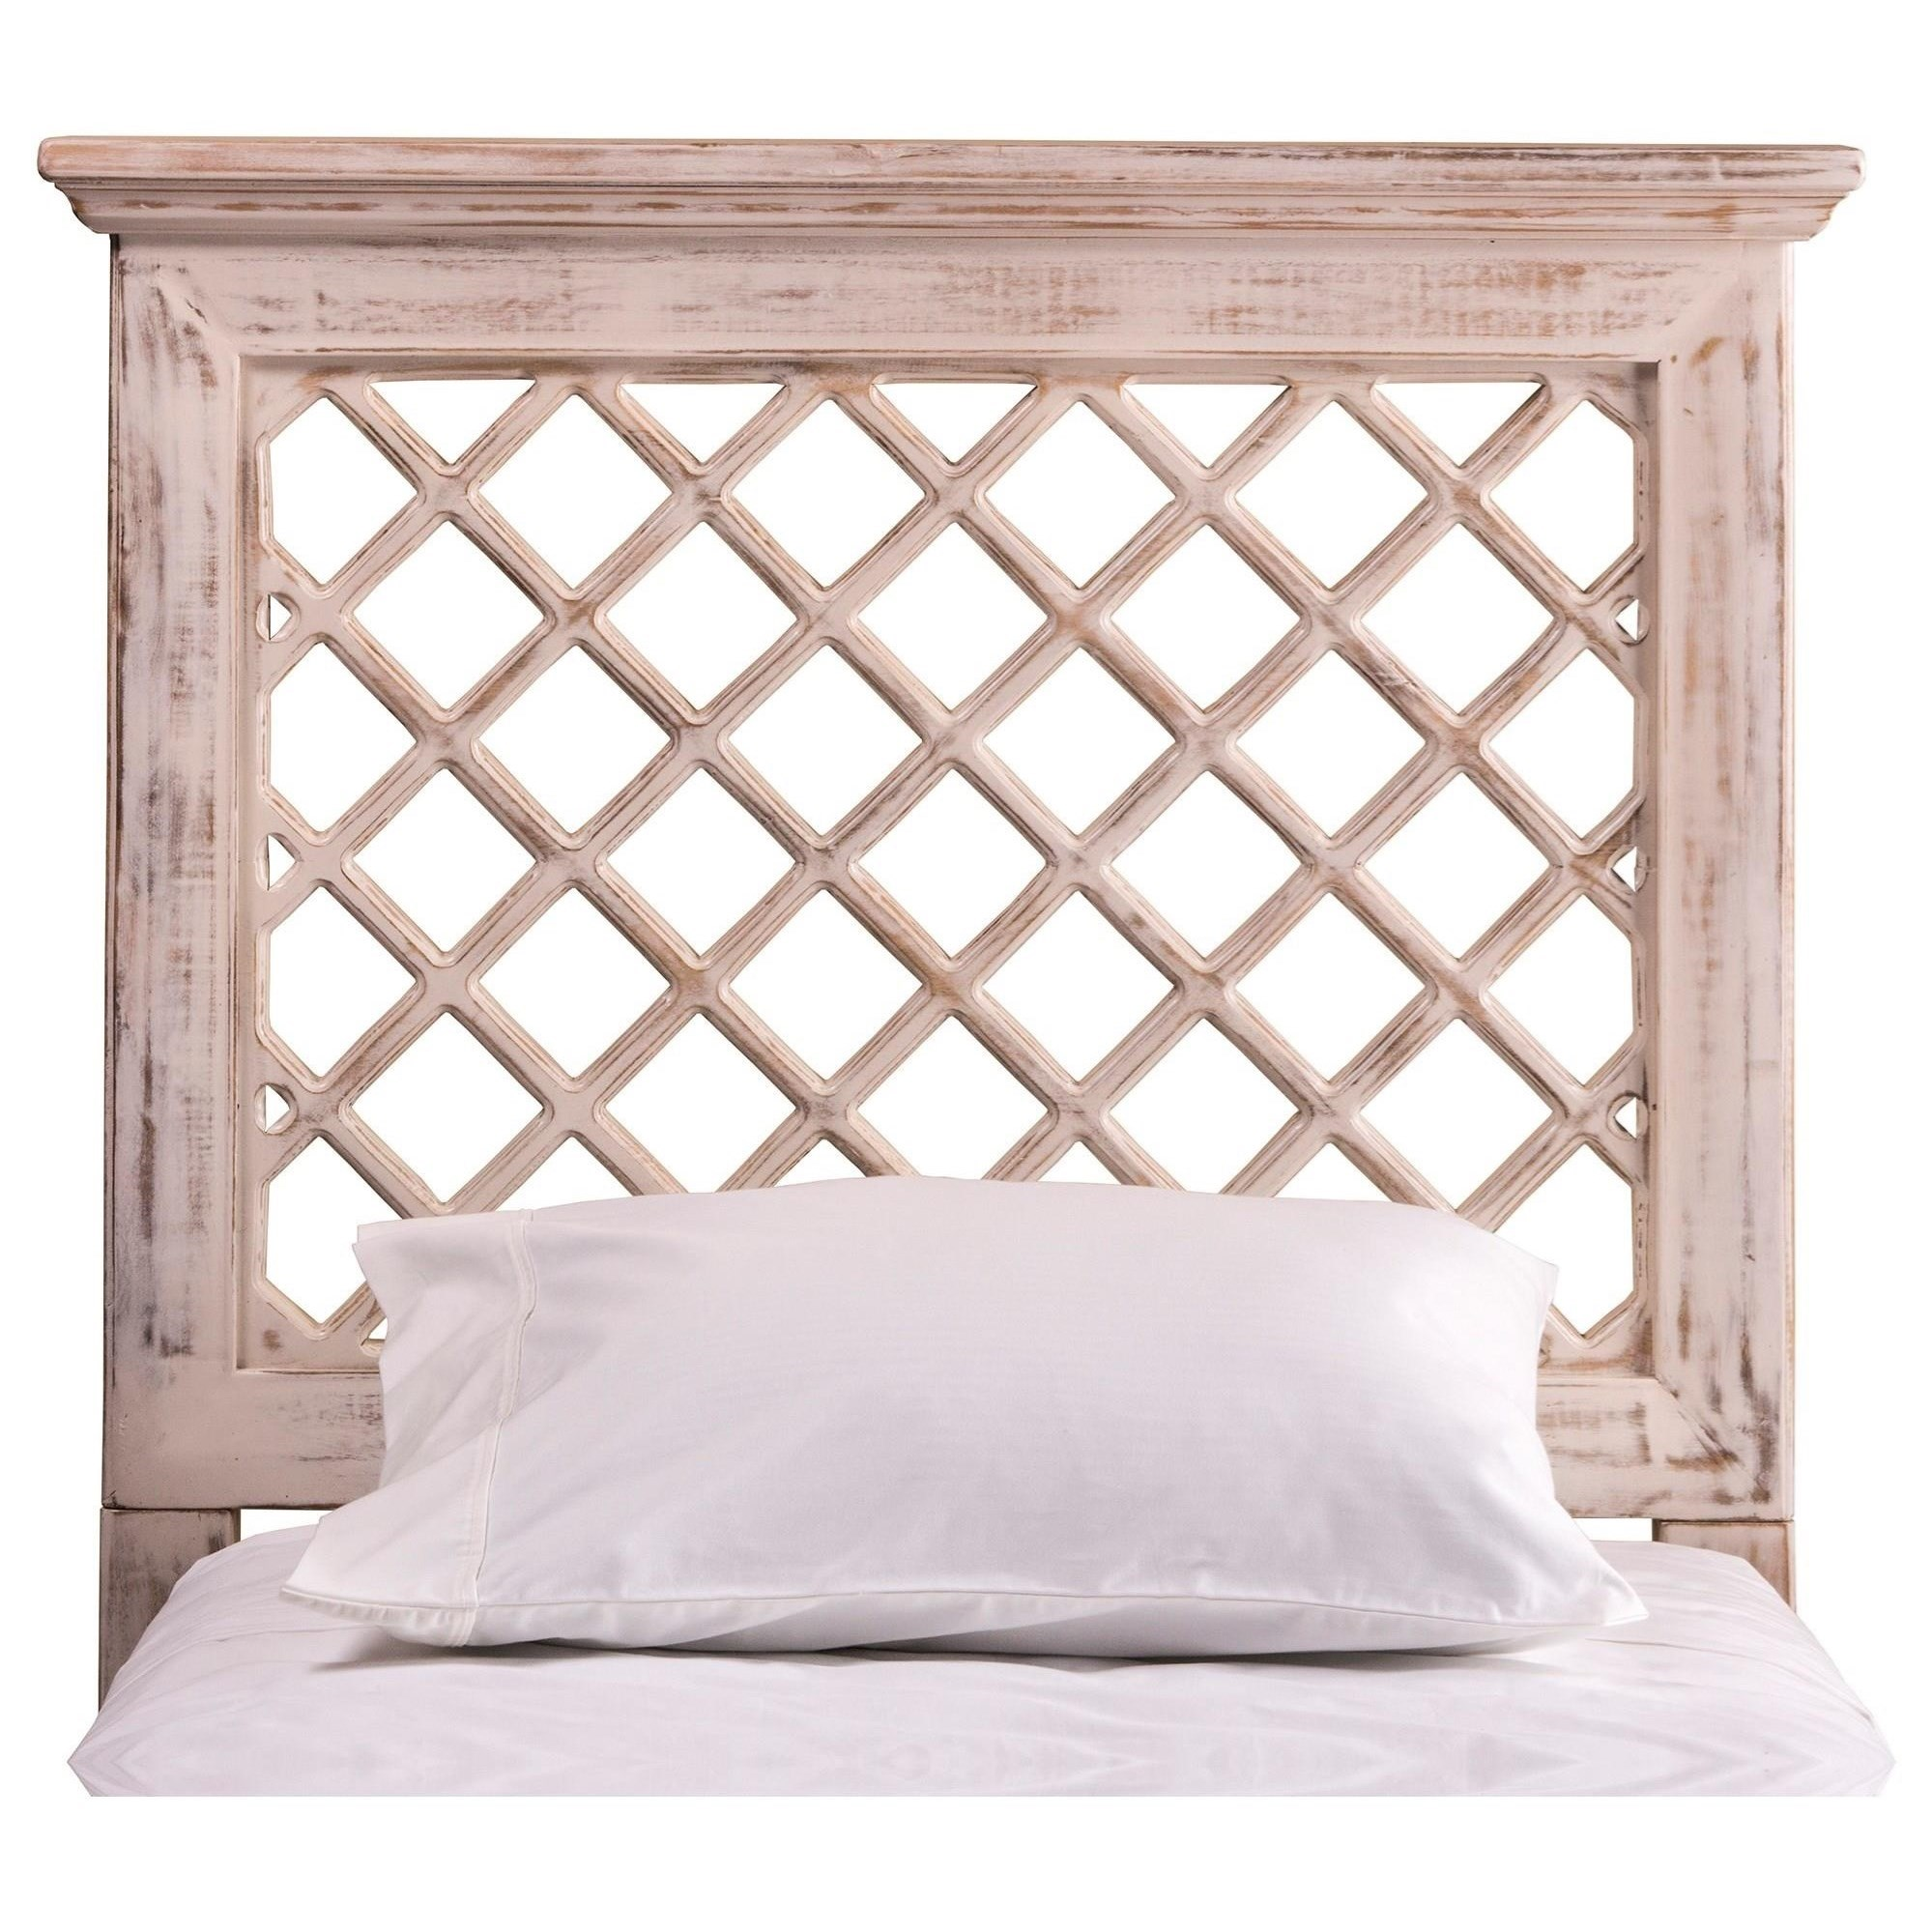 Hillsdale Wood Beds QueenHeadboard and Rails - Item Number: 1843HWFQR